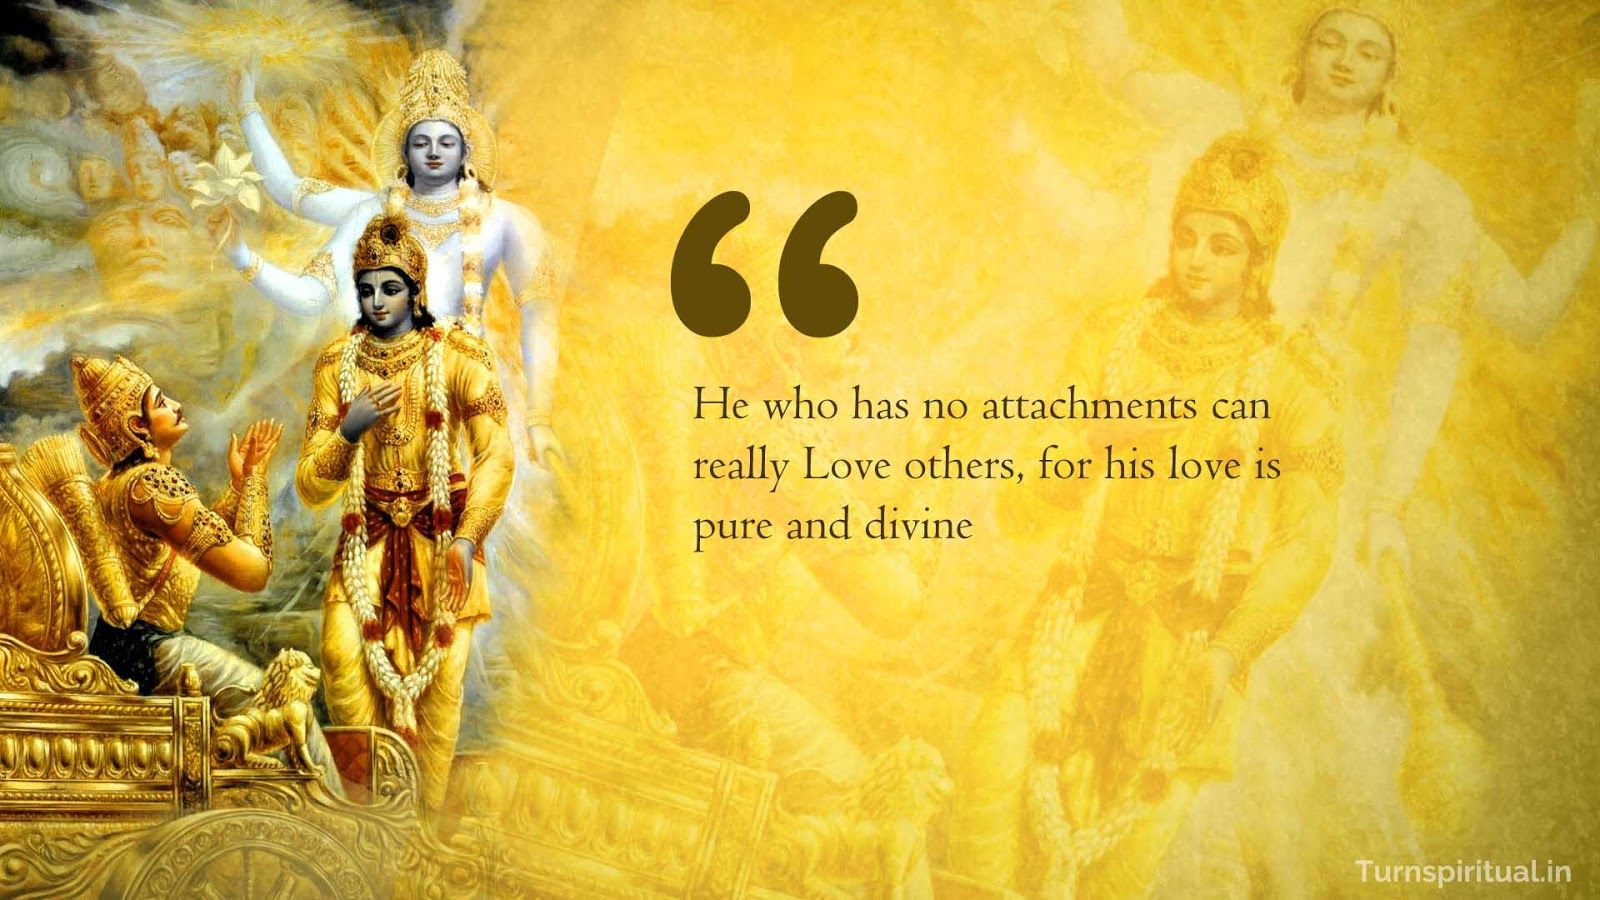 Bhagavad Gita Quotes On Love Facebook thumbnail